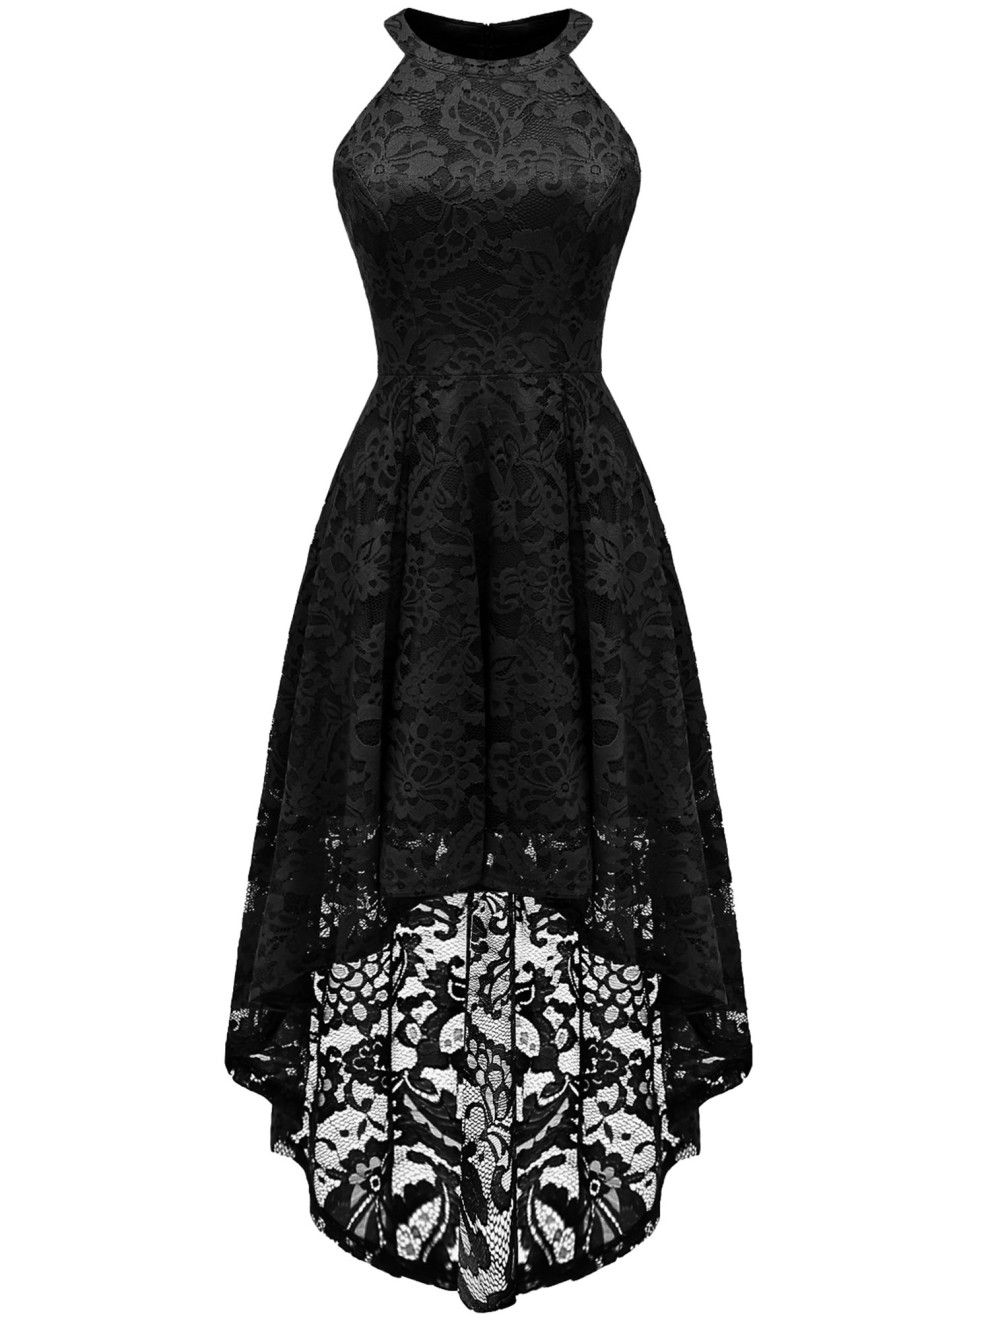 27 Little Black Dresses From Walmart You Need In Your Life Lace Maxi Dress Dresses Cocktail Dress Party [ 1320 x 990 Pixel ]